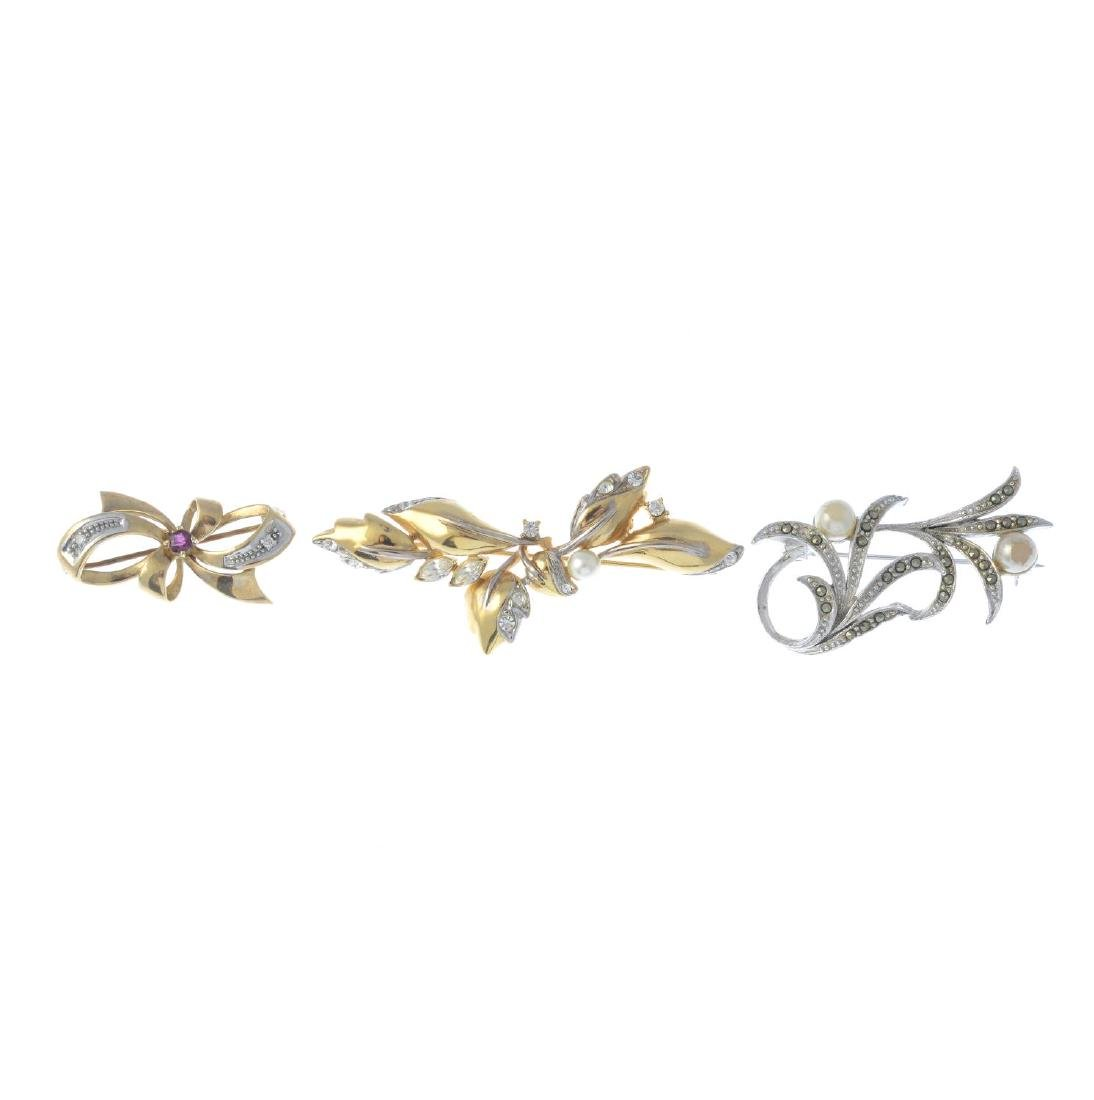 Three gem-set brooches. To include a 9ct gold ruby and